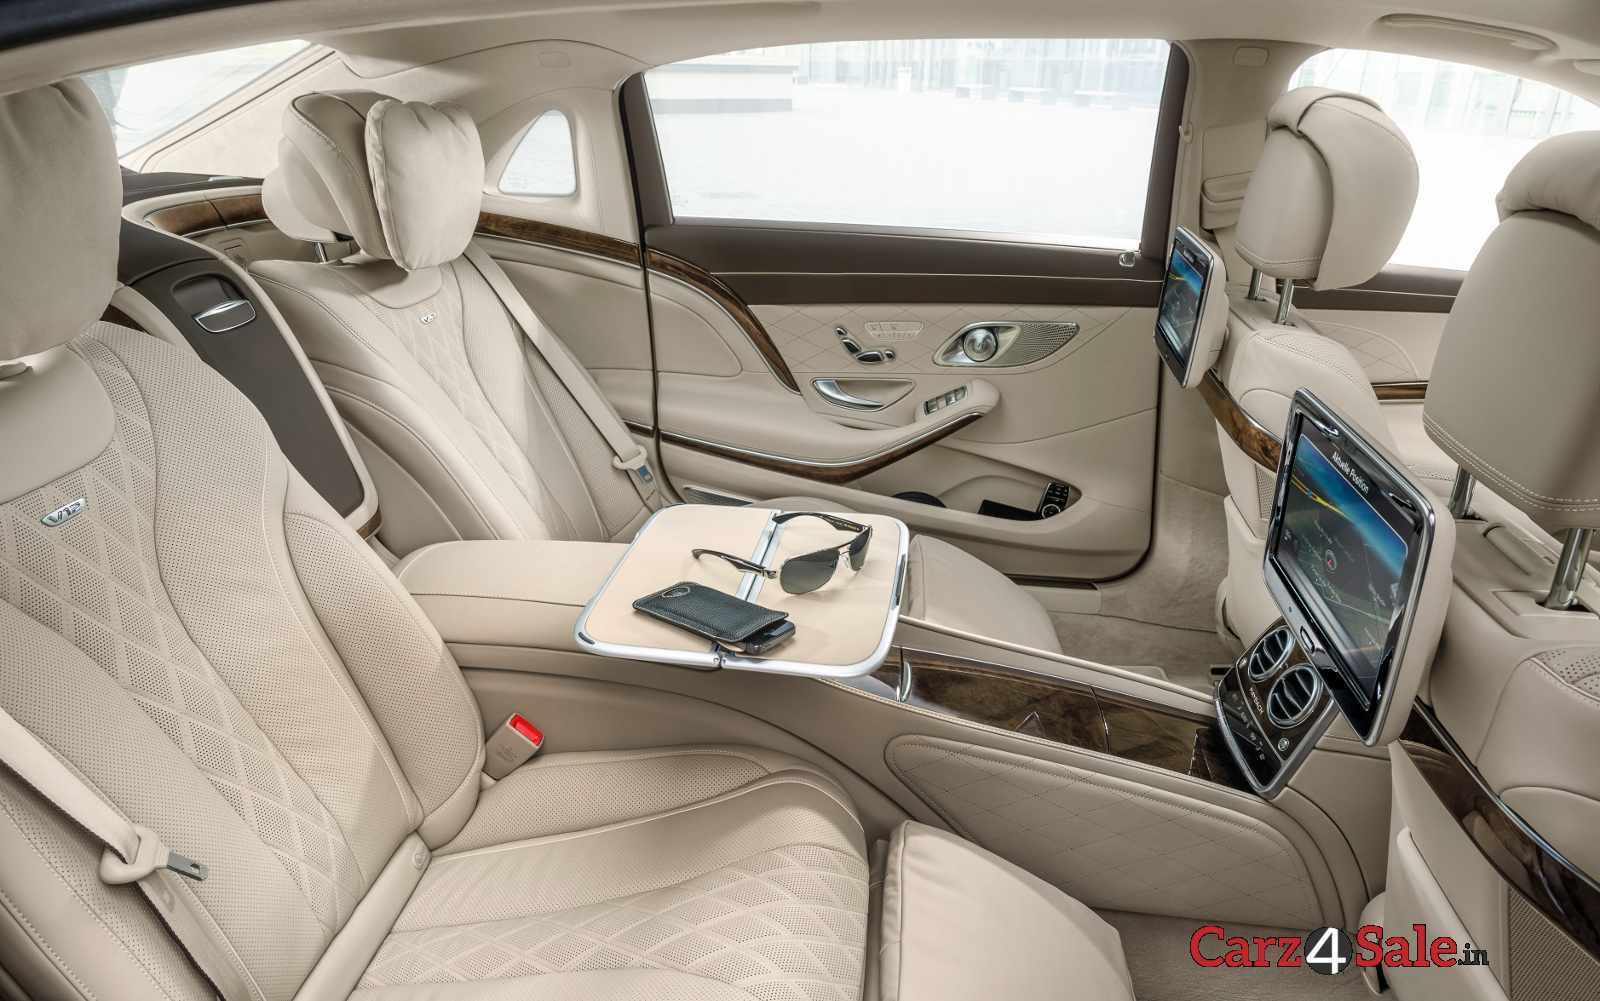 Mercedesmaybach S600 Rear Seats